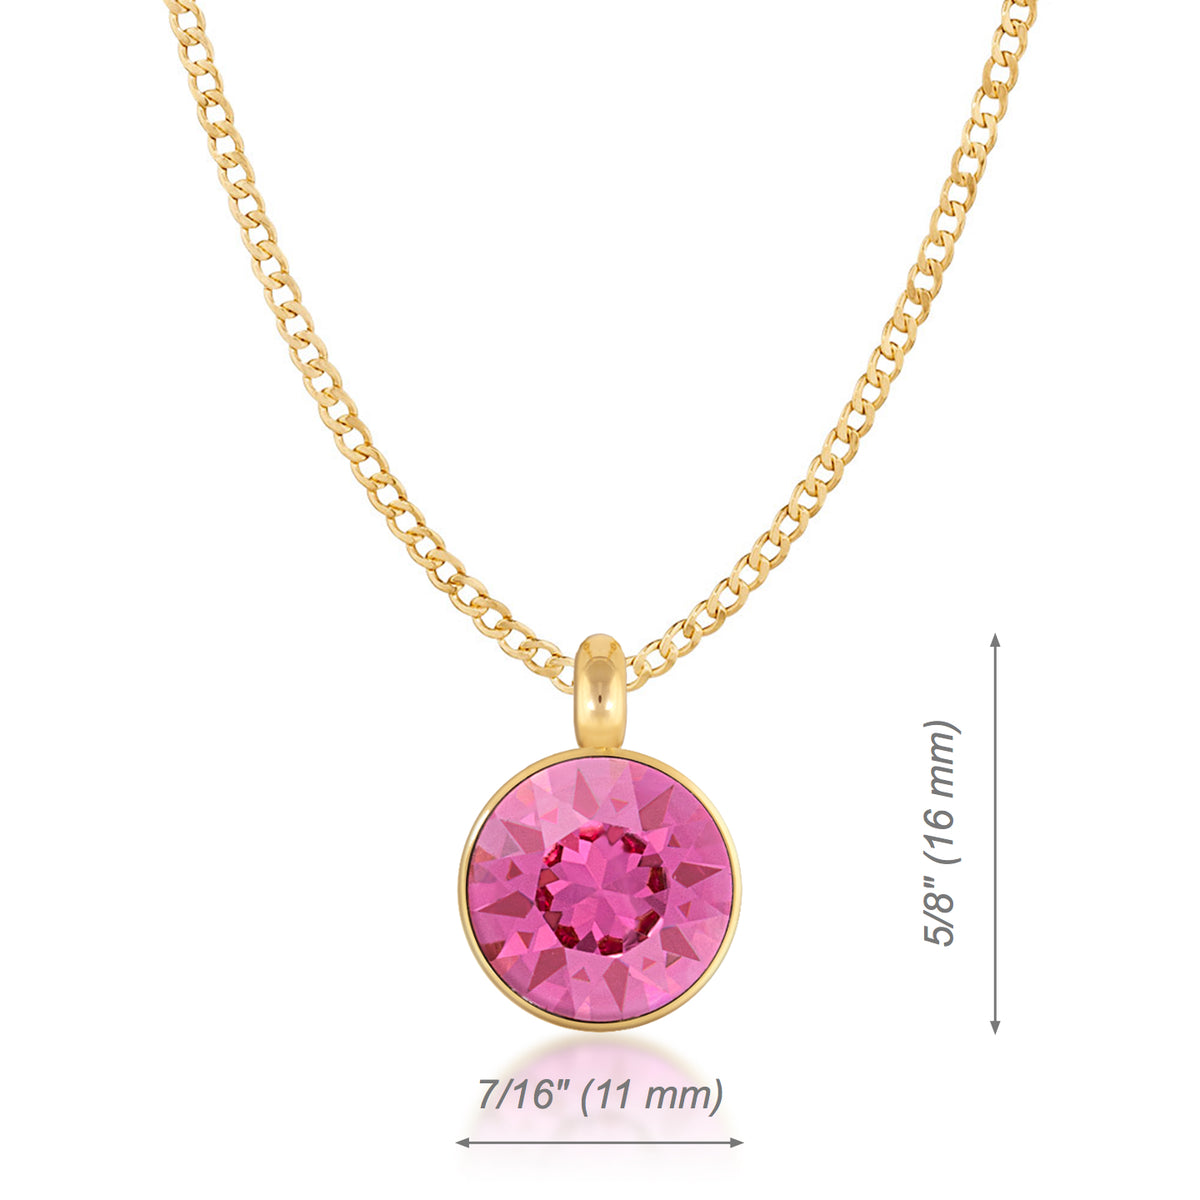 Bella Pendant Necklace with Pink Rose Round Crystals from Swarovski Gold Plated - Ed Heart